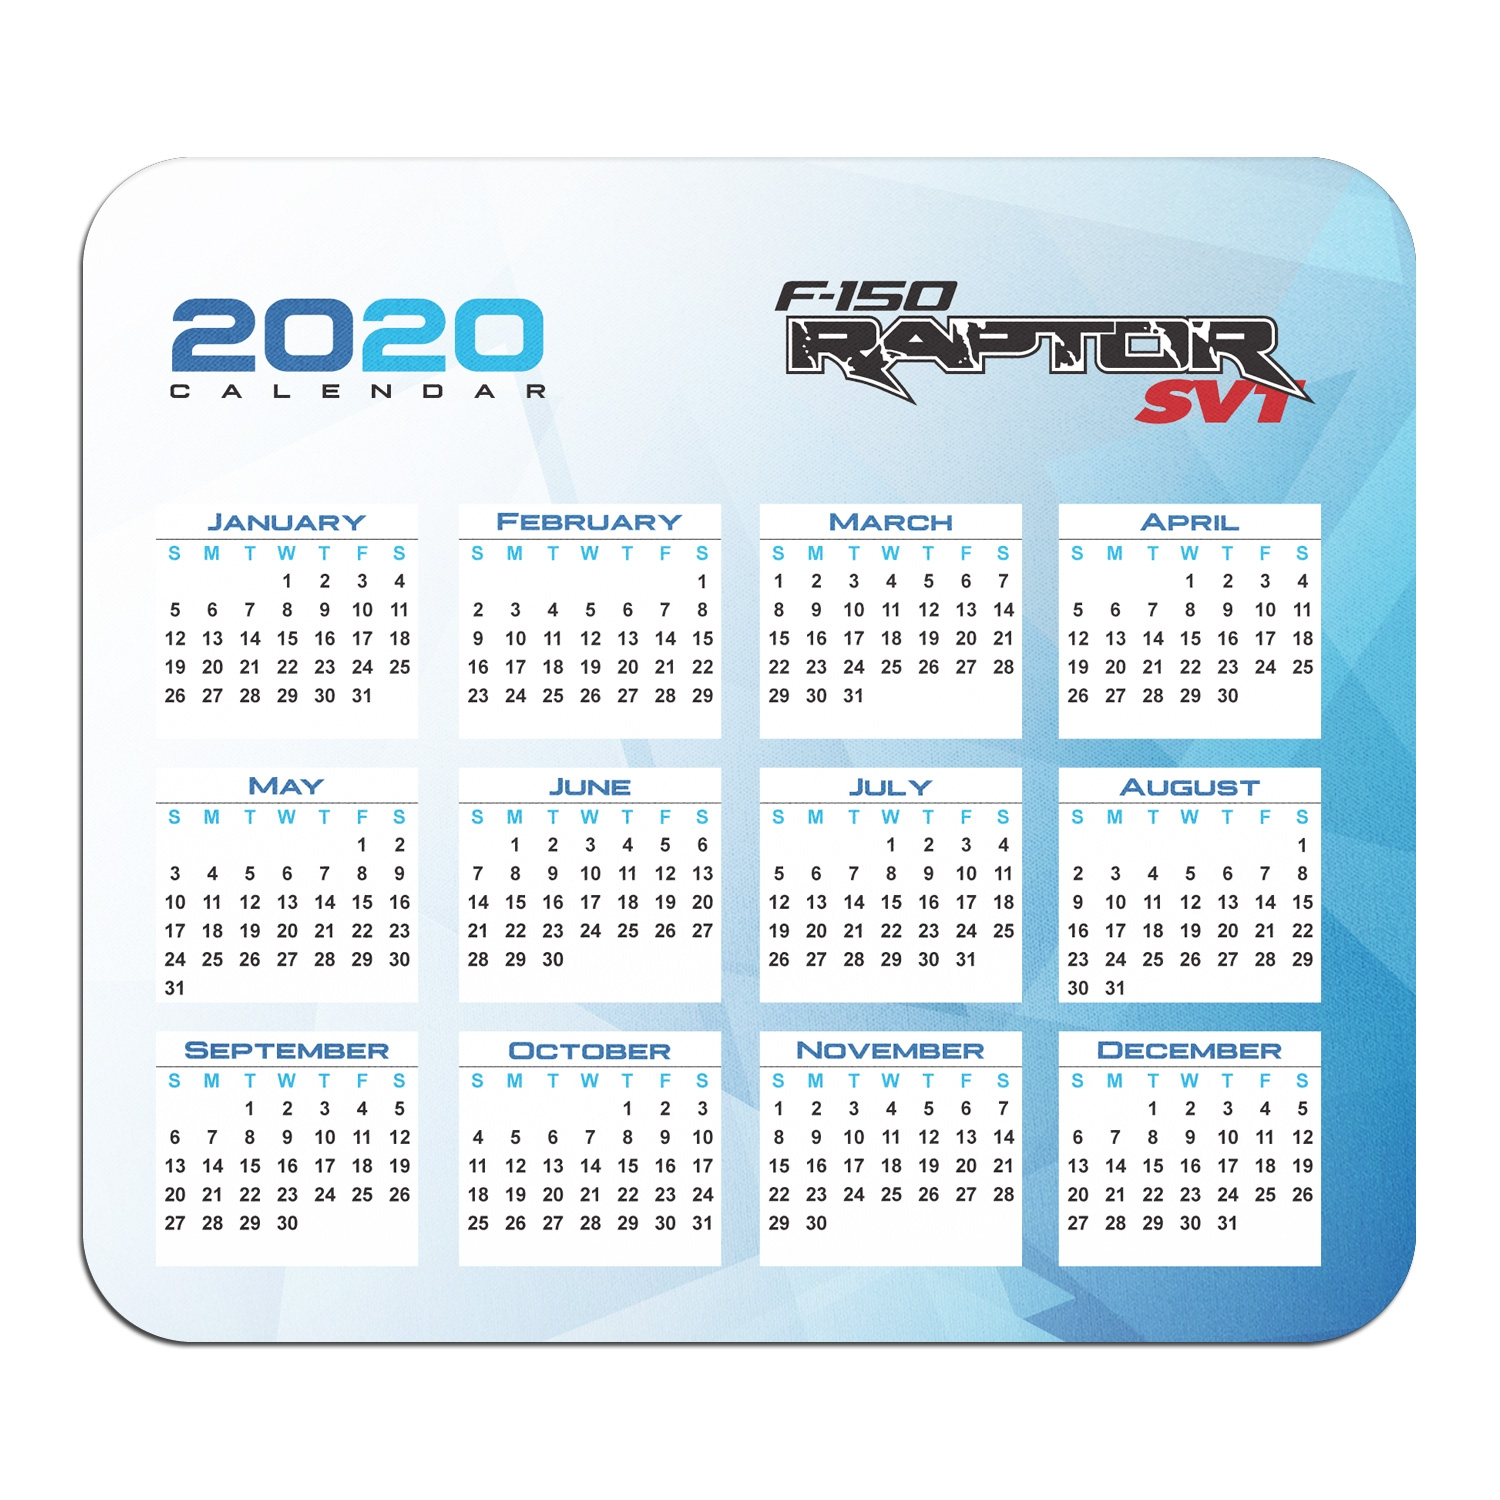 Ford F-150 Raptor SVT Year Calendar Graphic PC Mouse Pad